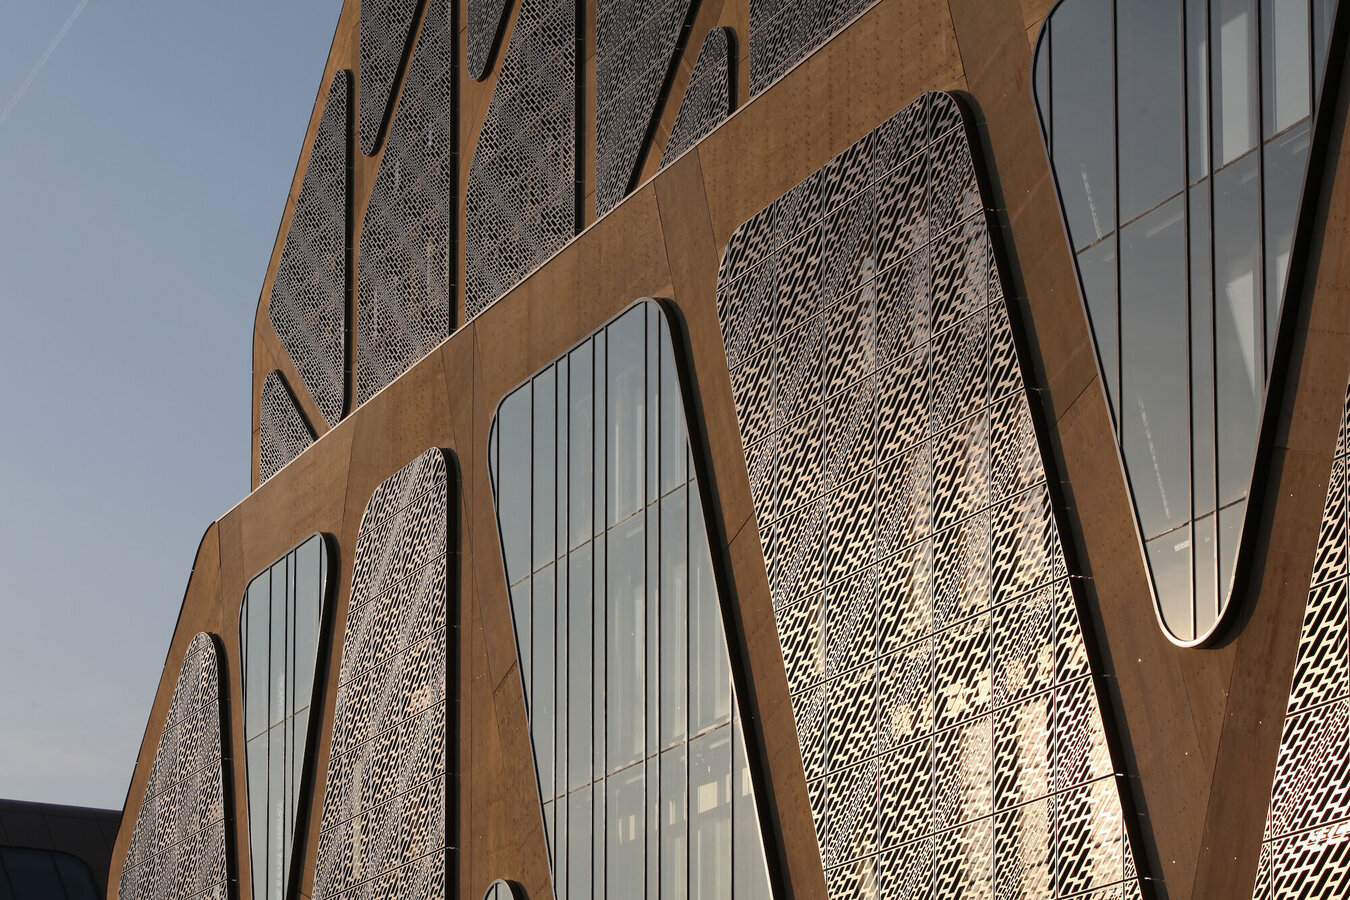 CW 50 Curtain Walls - Palace of justice/Court Court of Justice Building The Hasselaar located in Hasselt, Belgium